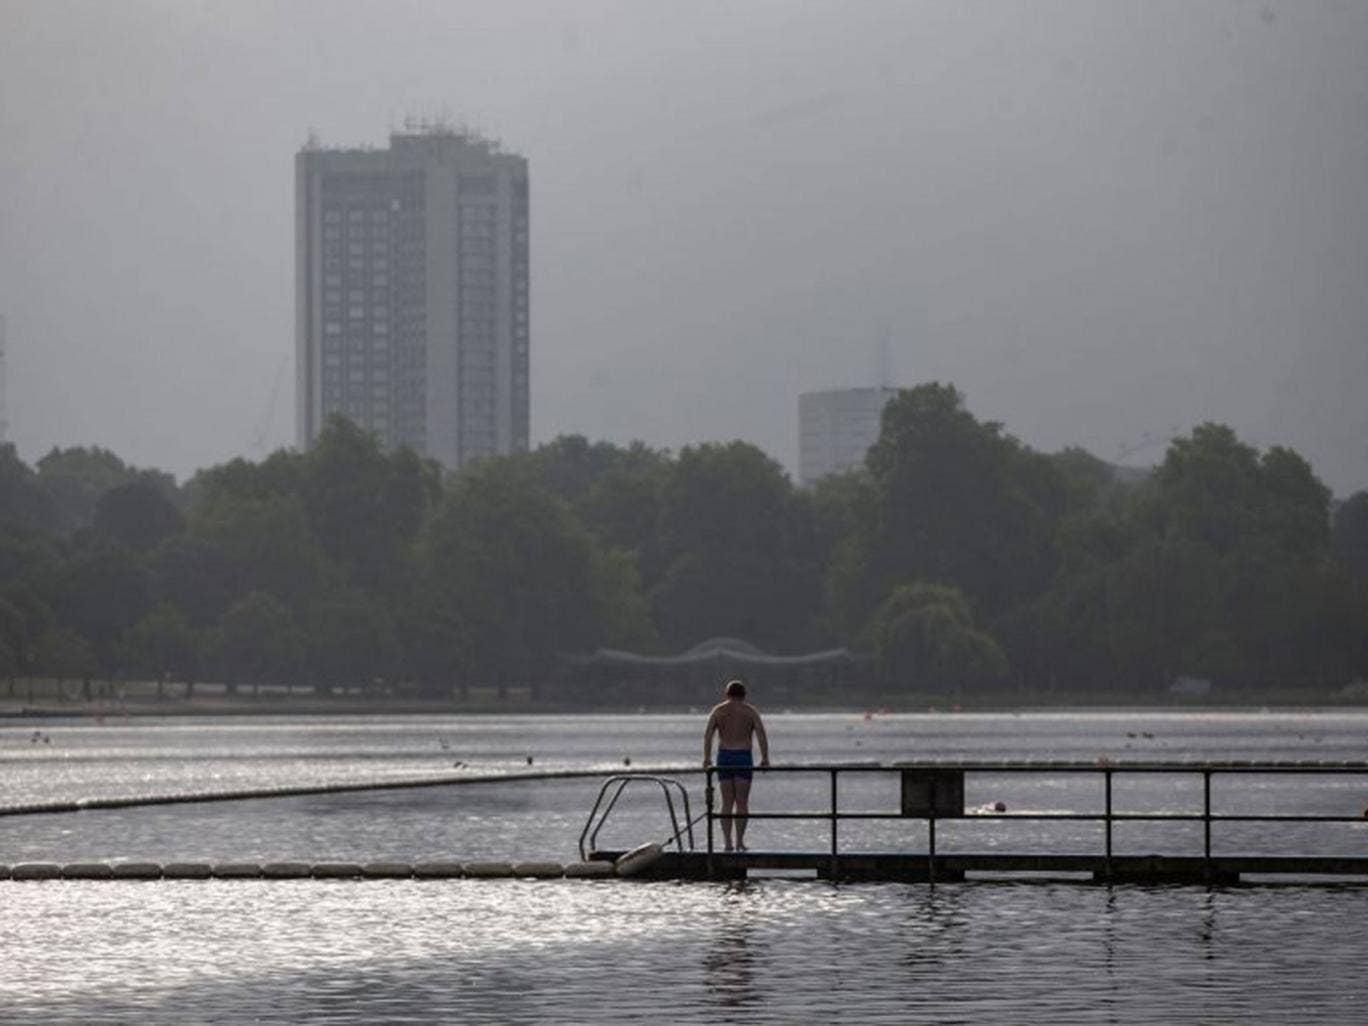 The summer months can mean a economic plateau